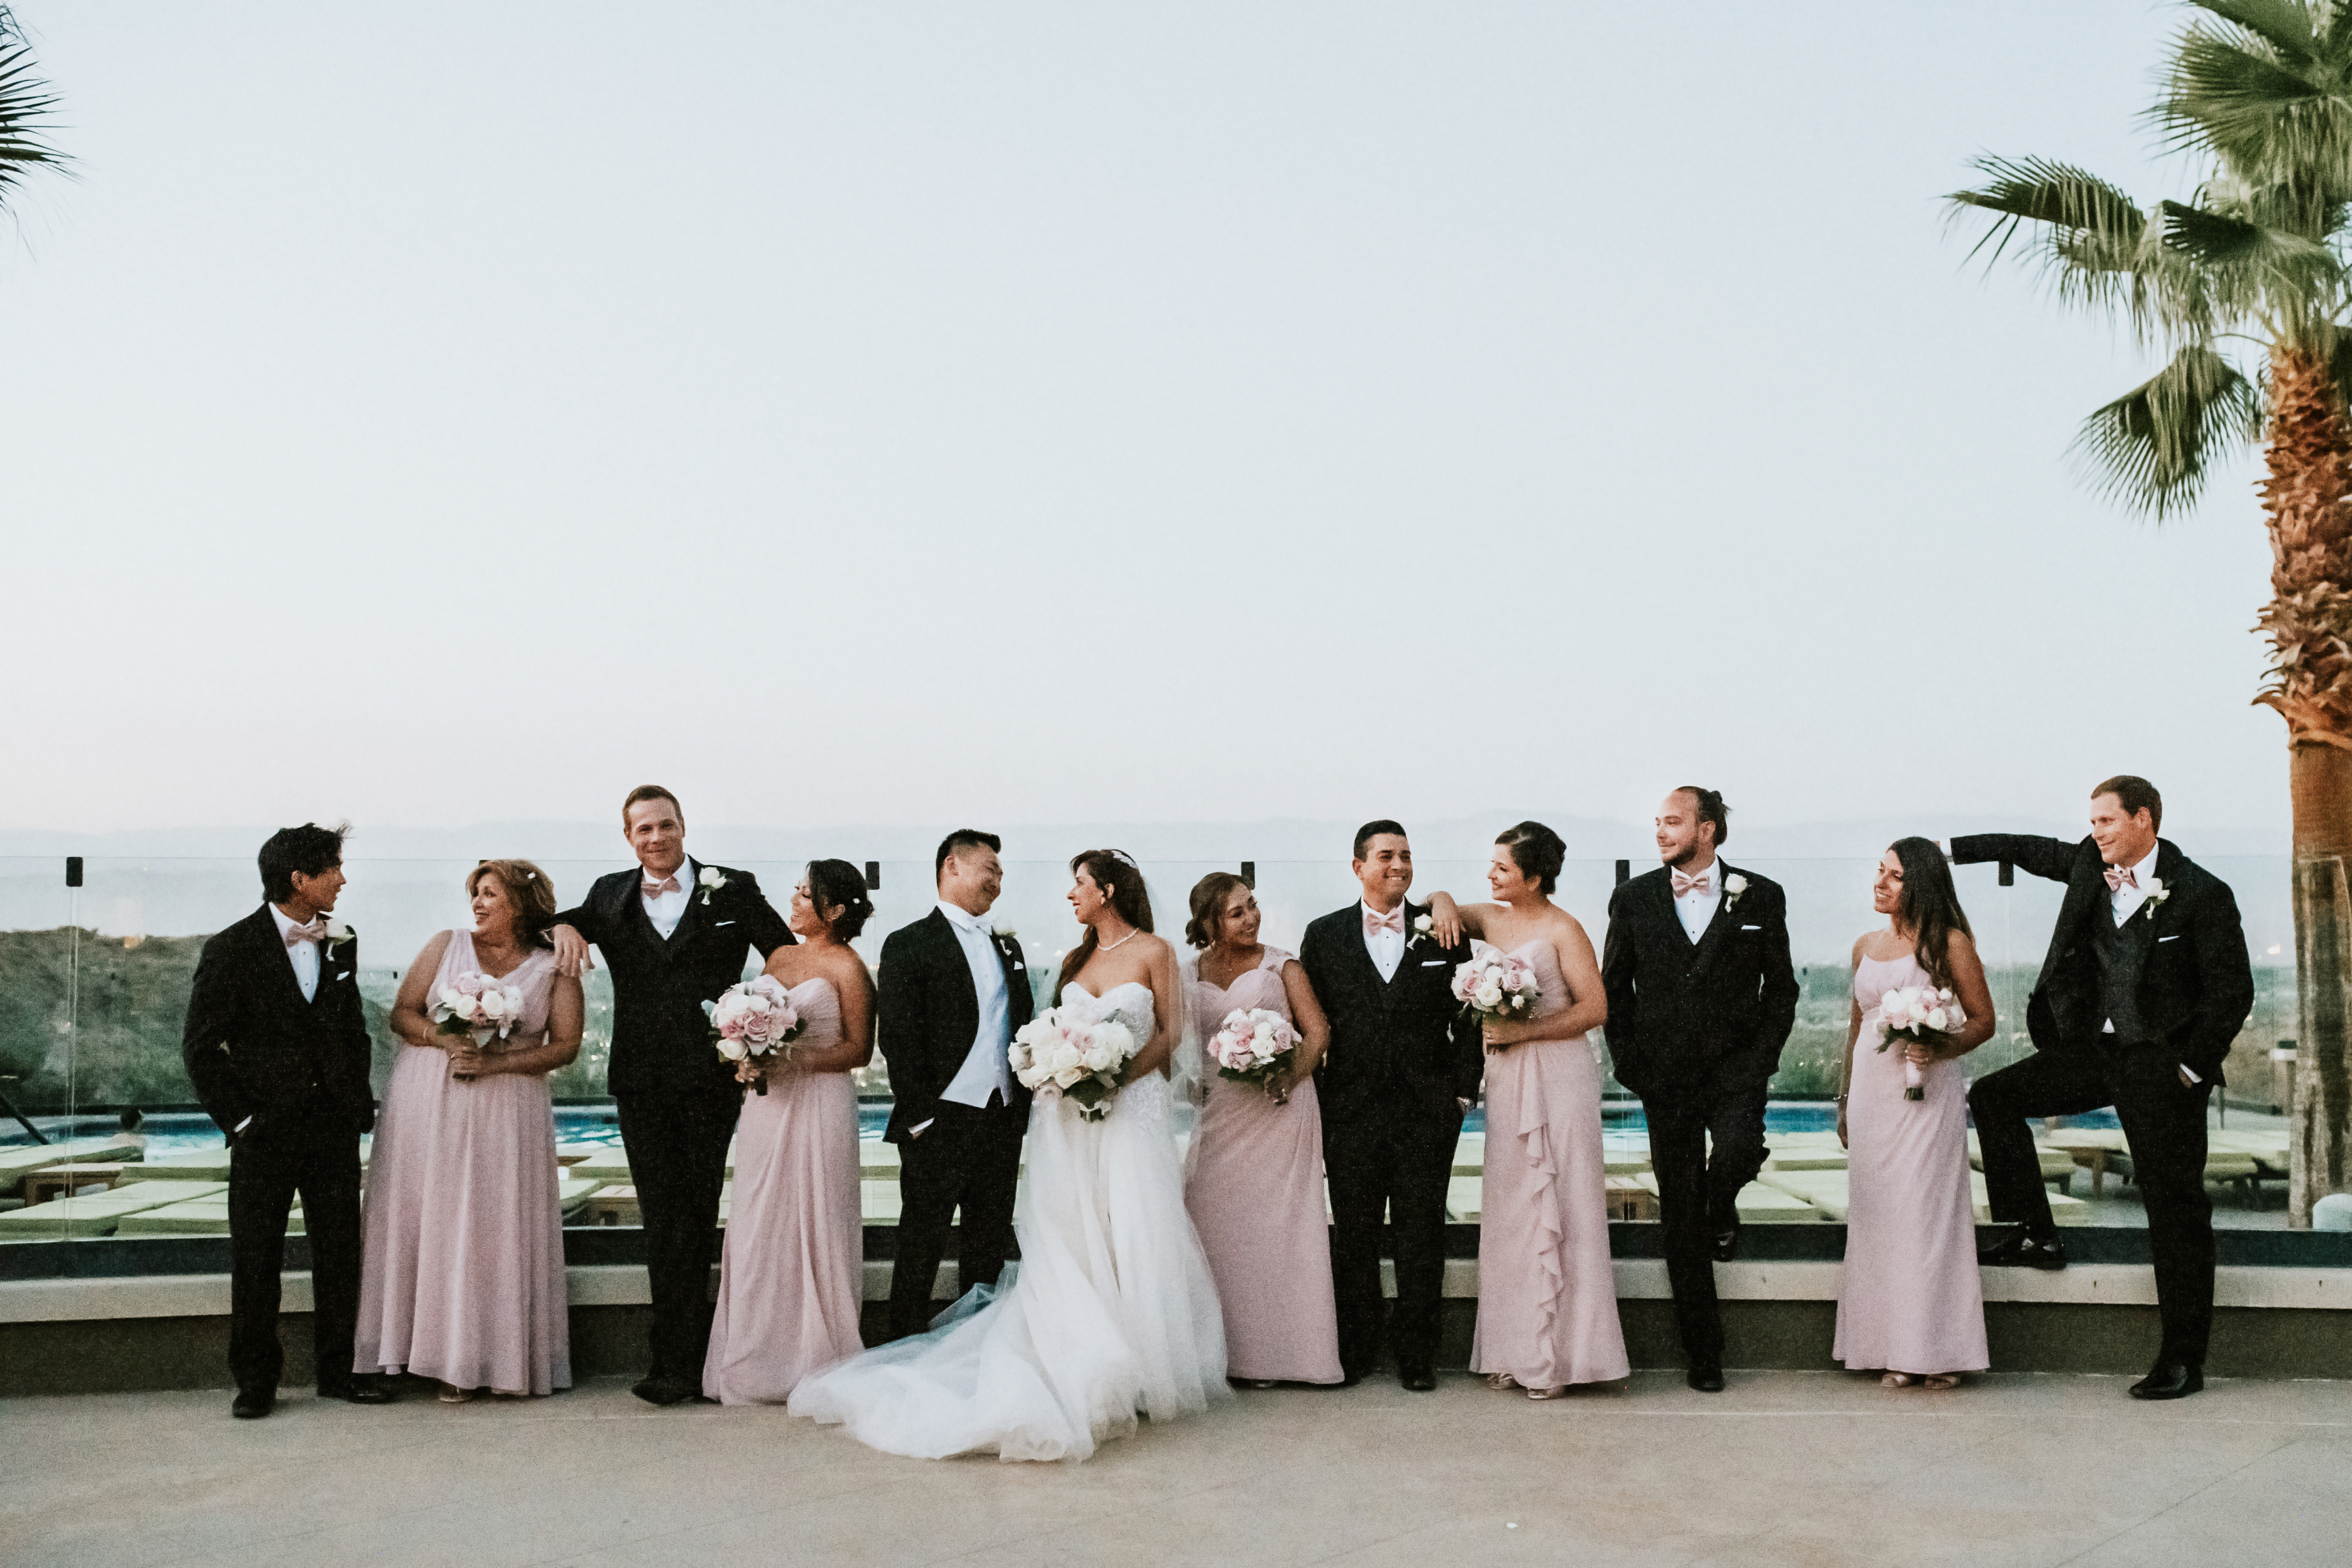 bride and groom with bridal party groomsmen bridesmaids group photo wedding day wedding photography